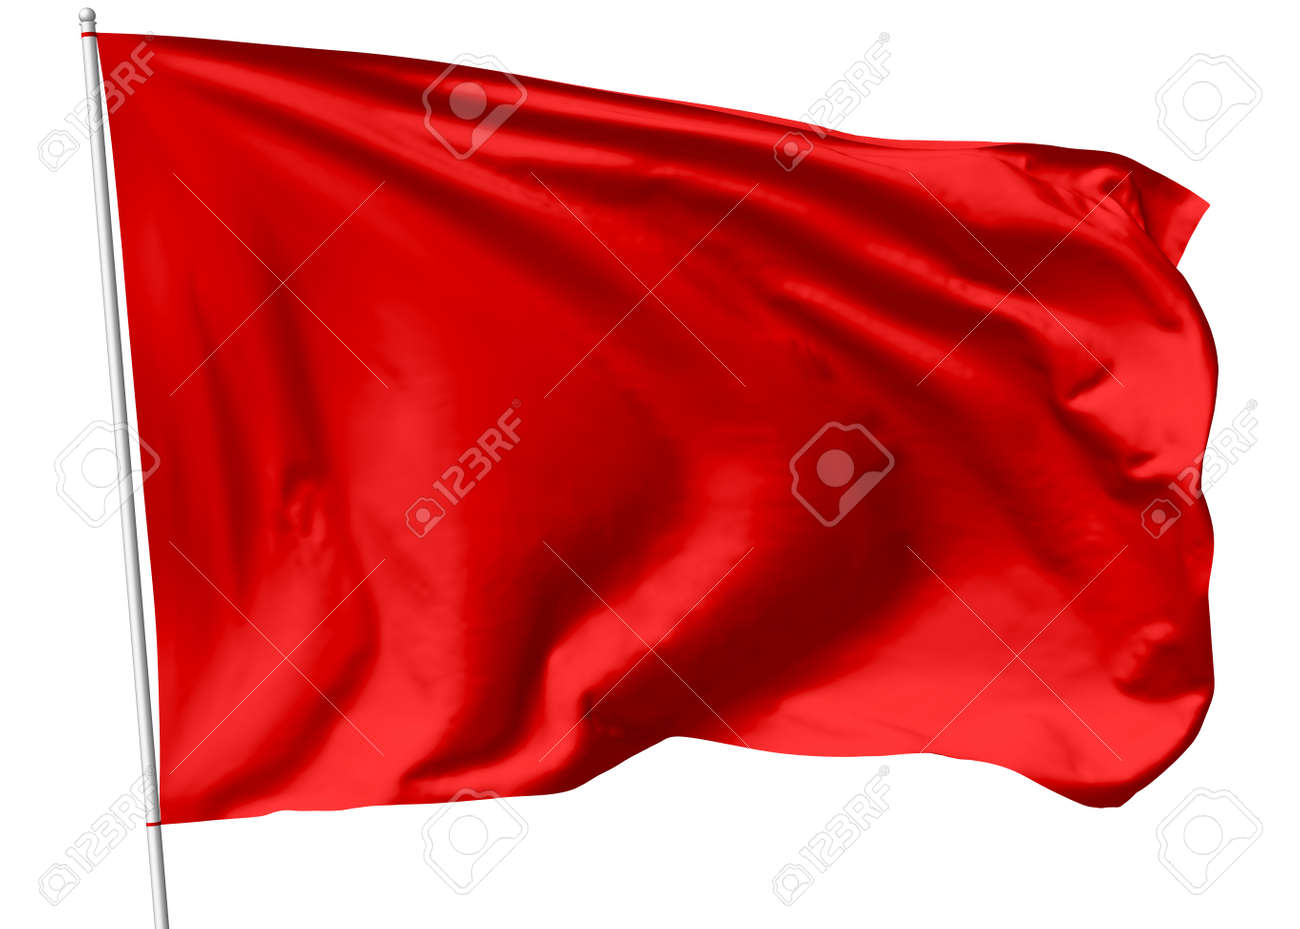 Red flag on flagpole flying in the wind isolated on white, 3d illustration - 29489781